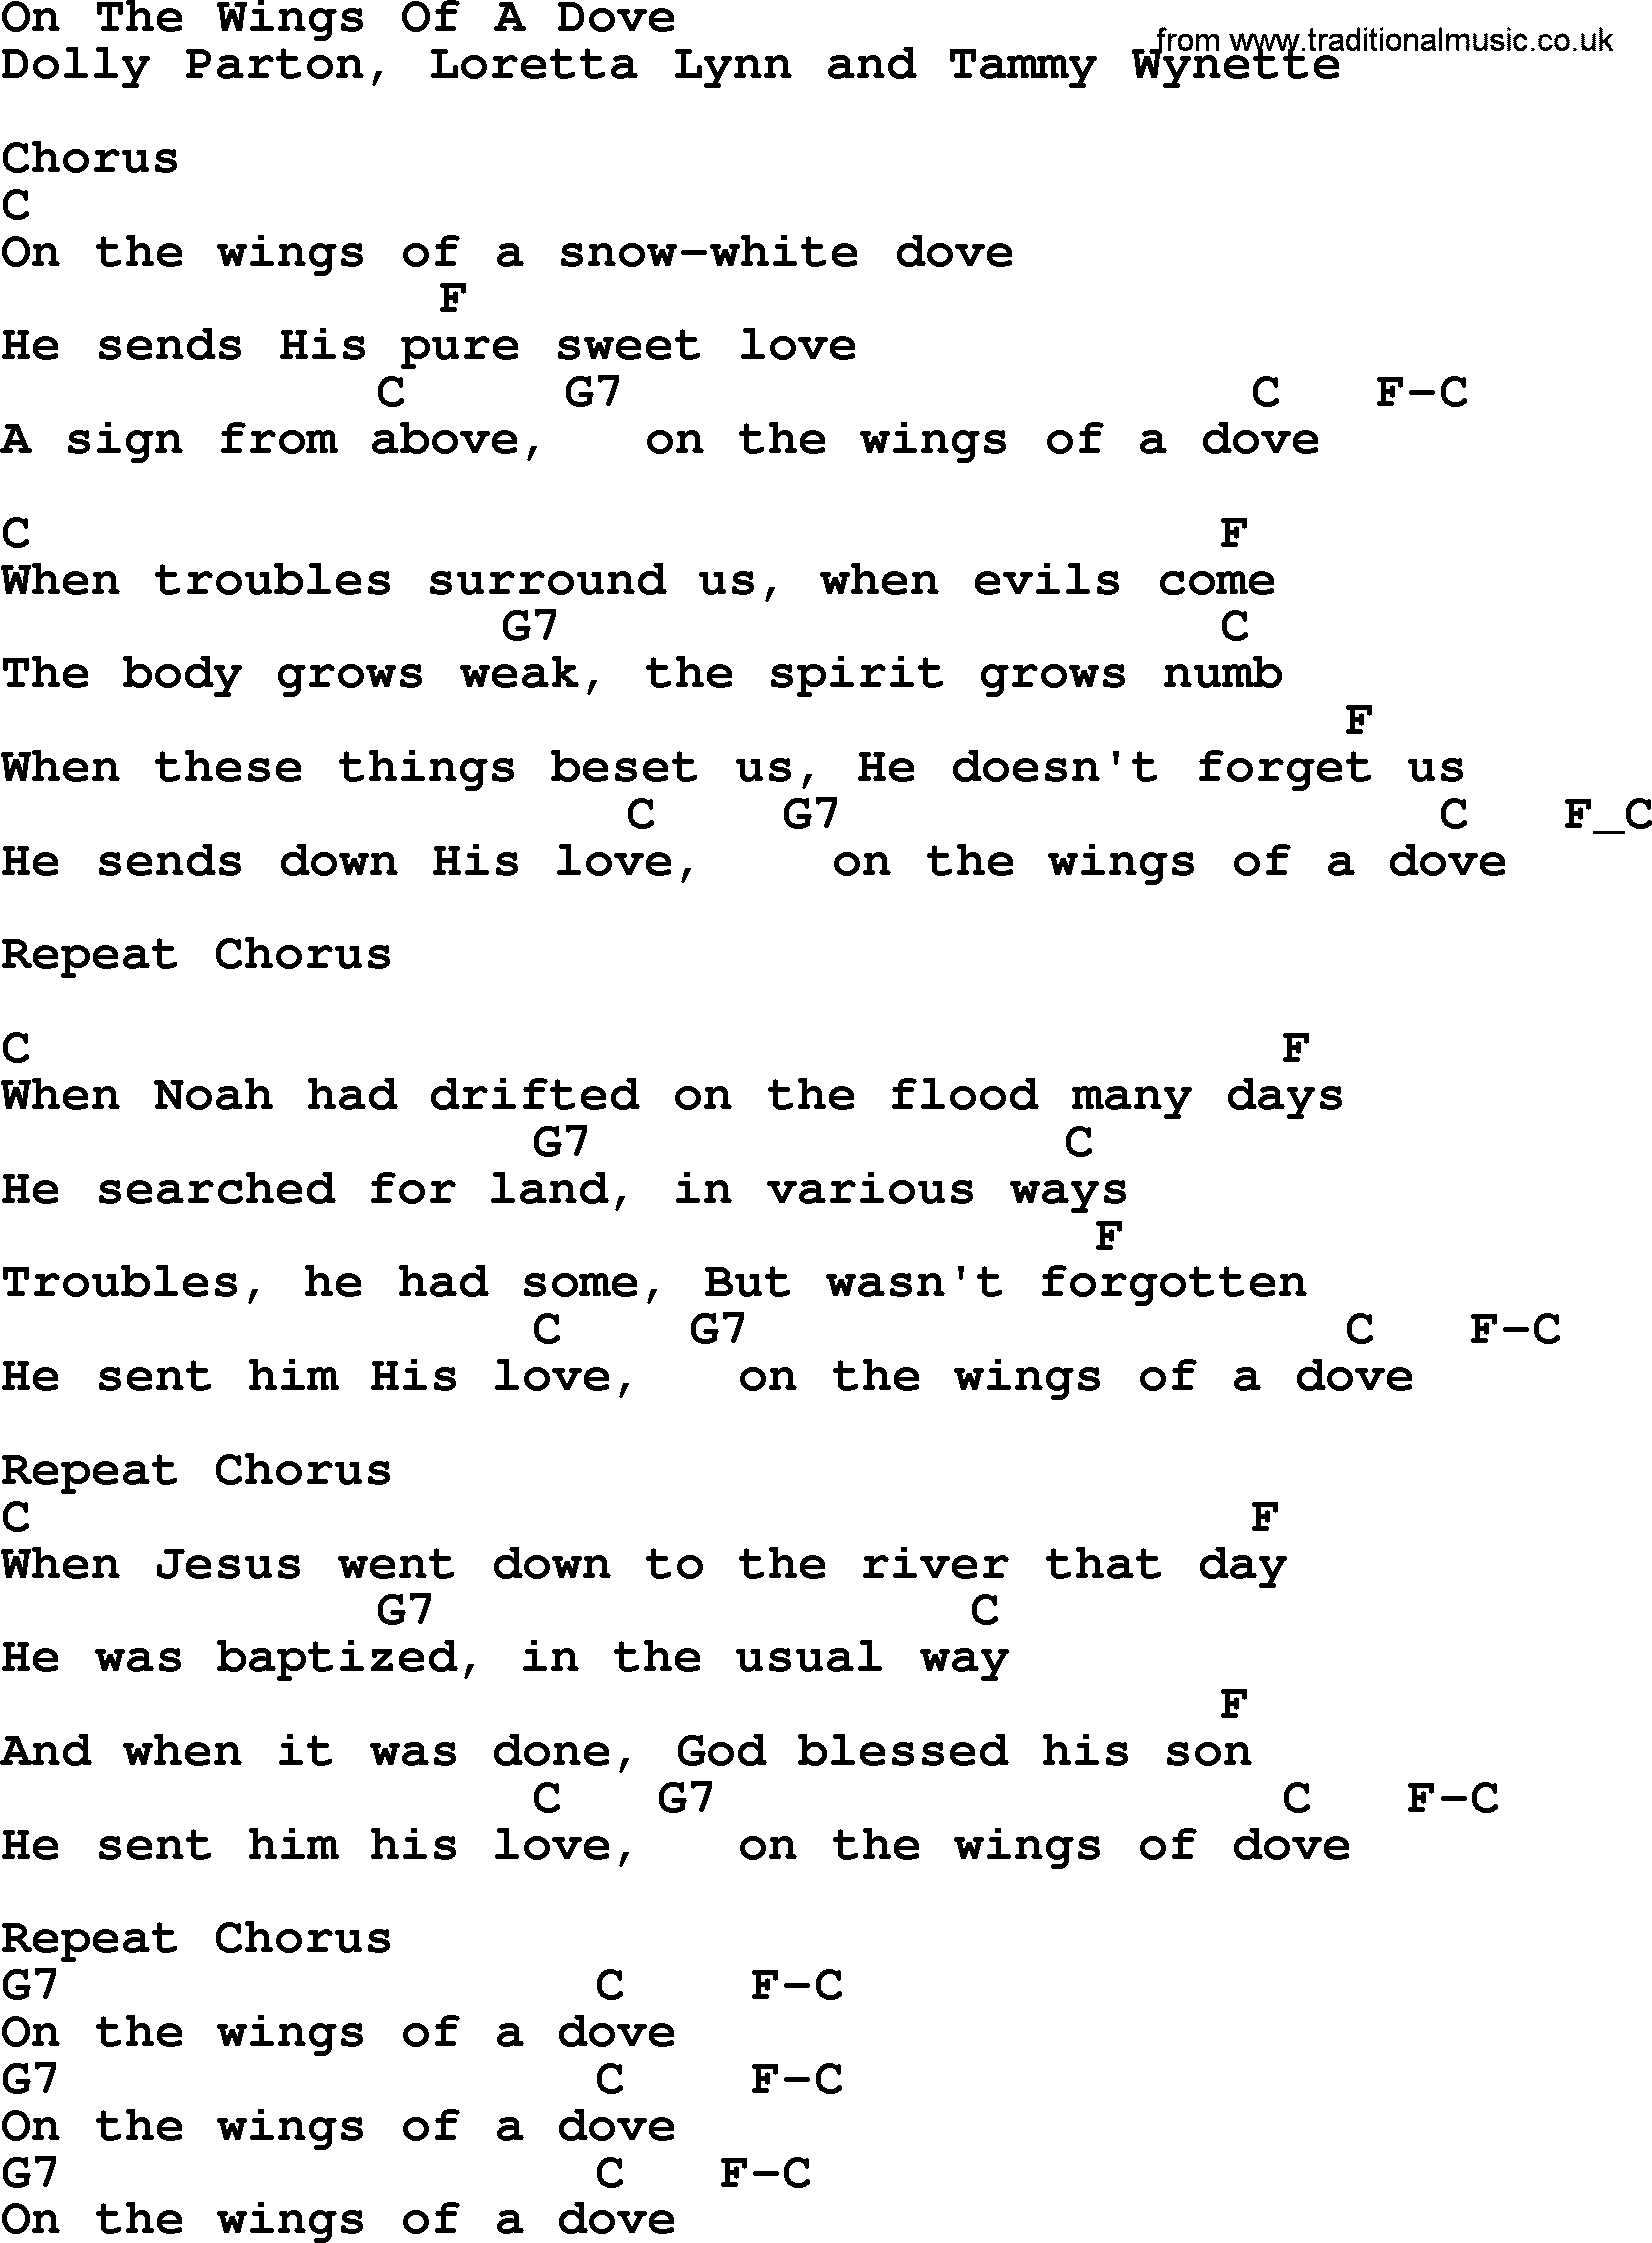 Dolly Parton Song On The Wings Of A Dove Lyrics And Chords Gospel